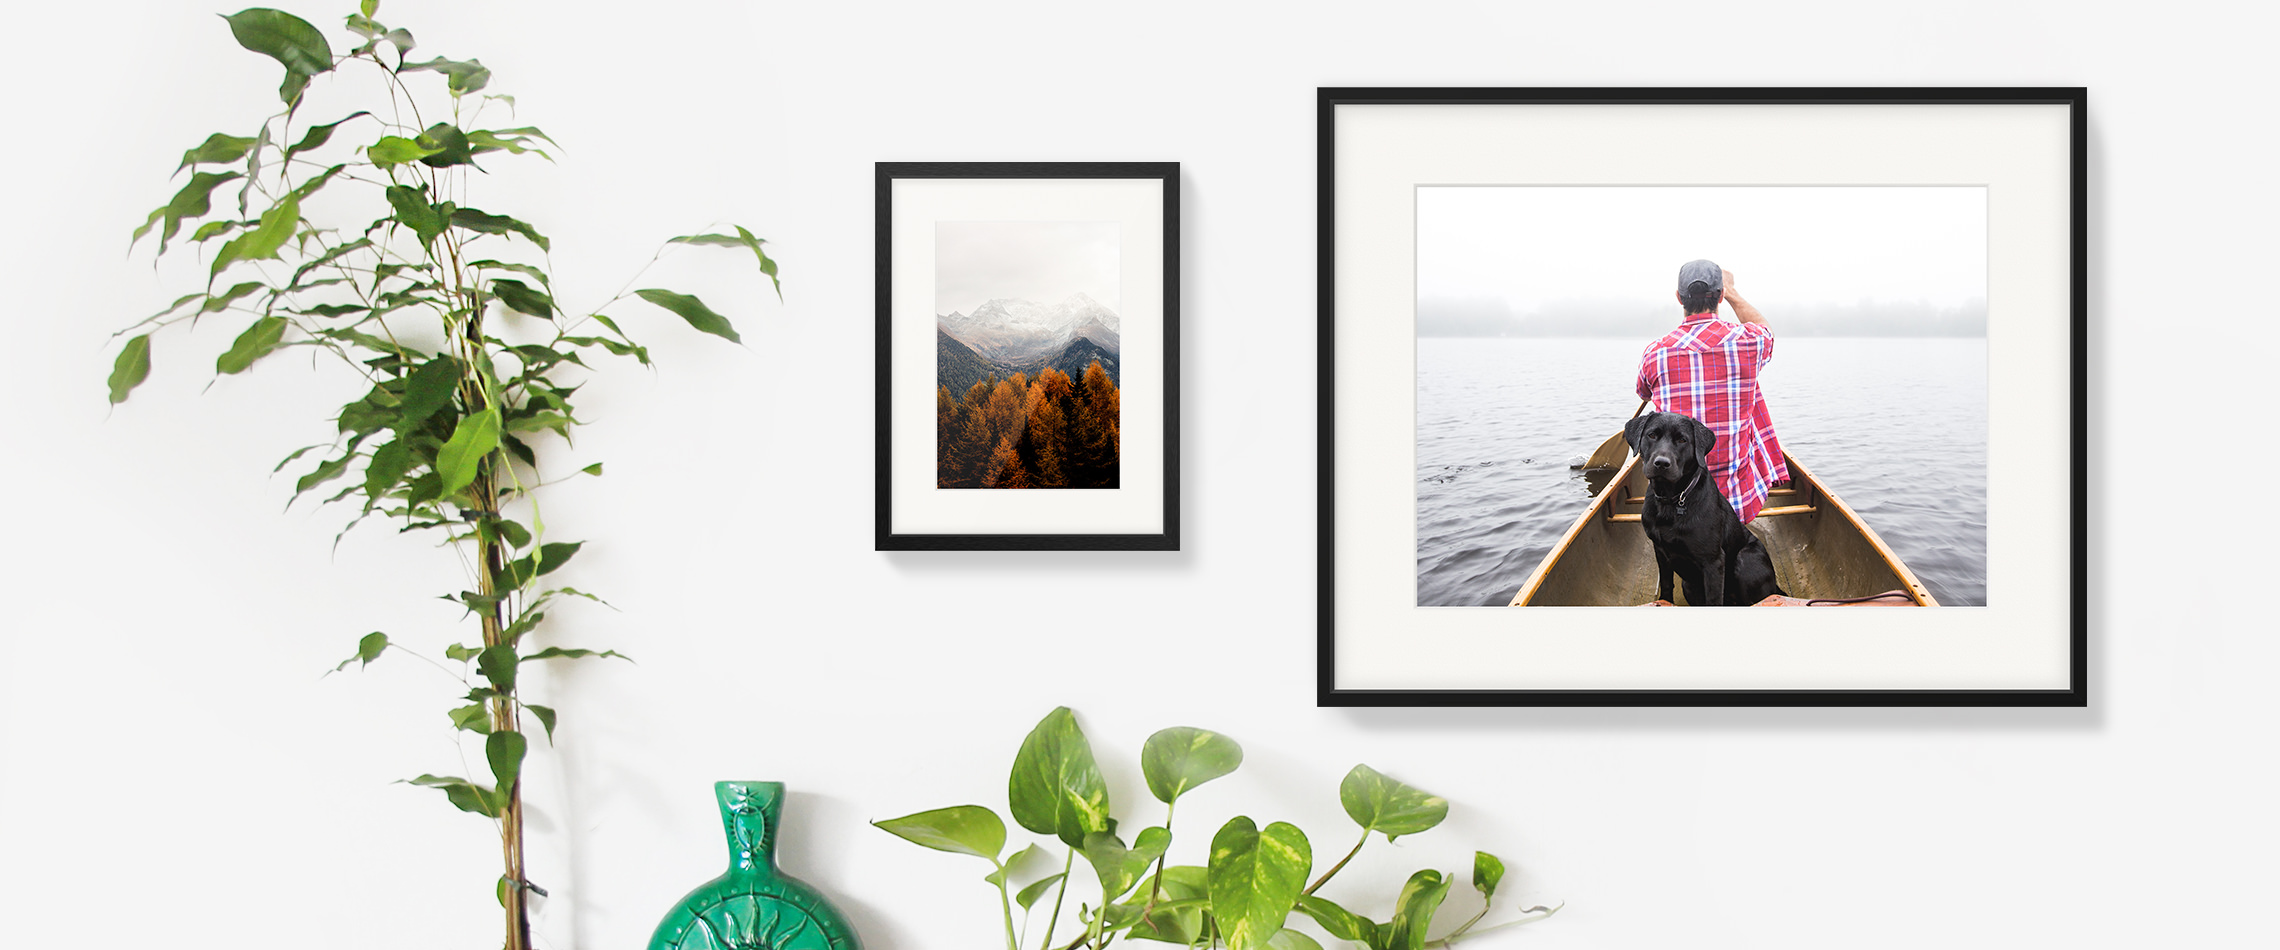 Two hanging gallery frames side by side on a white wall; one is an image of autumnal trees, the other is a man and his dog on a canoe.